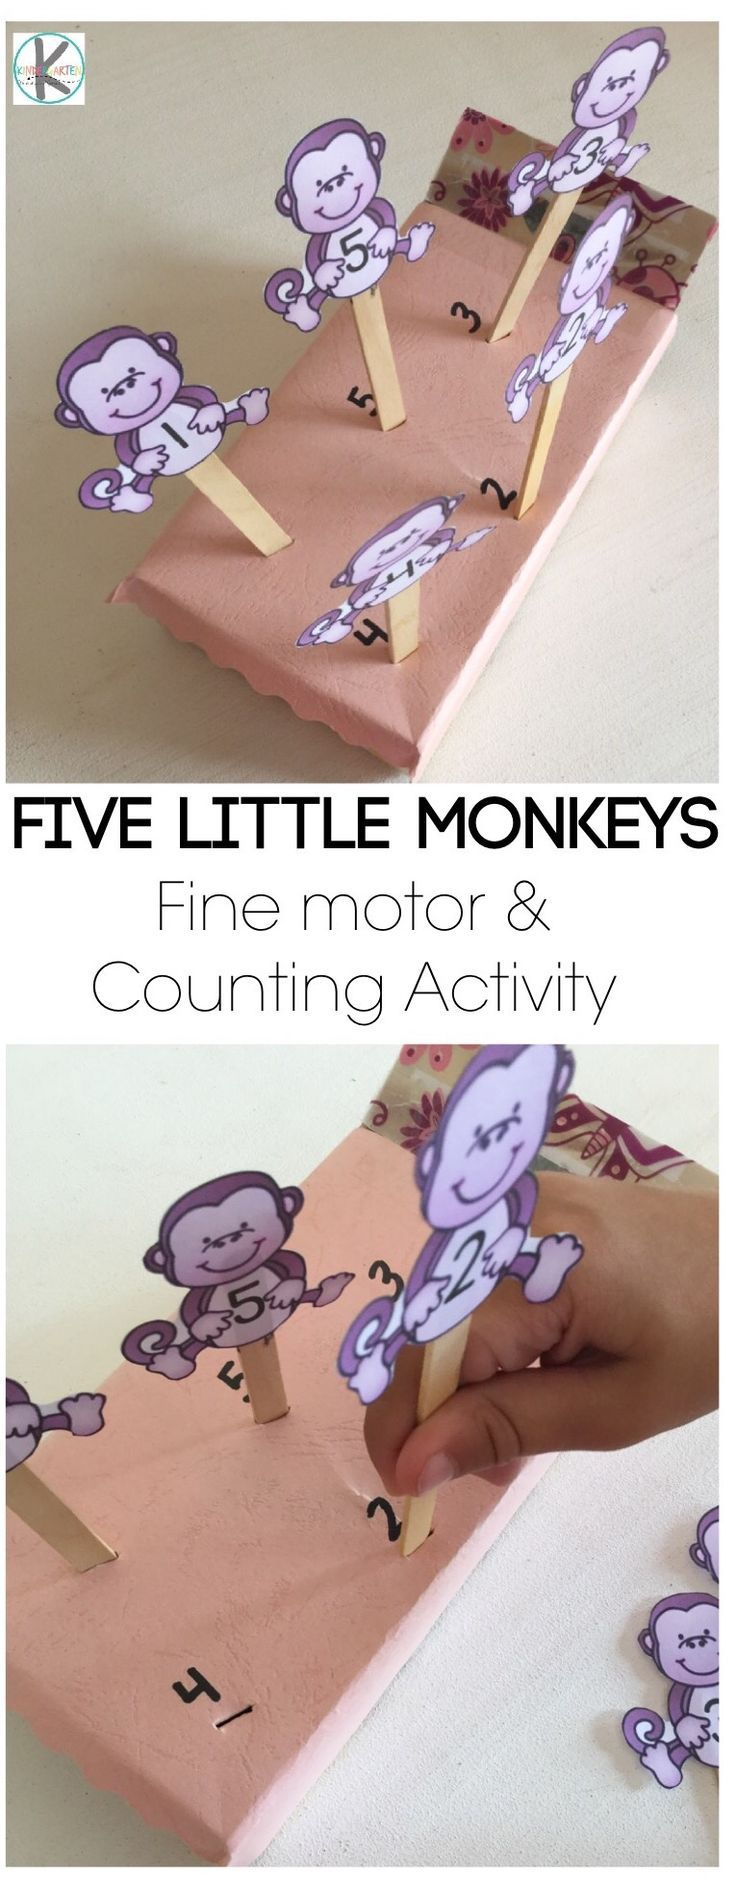 5 little monkeys nursery rhyme activity for kindergarten